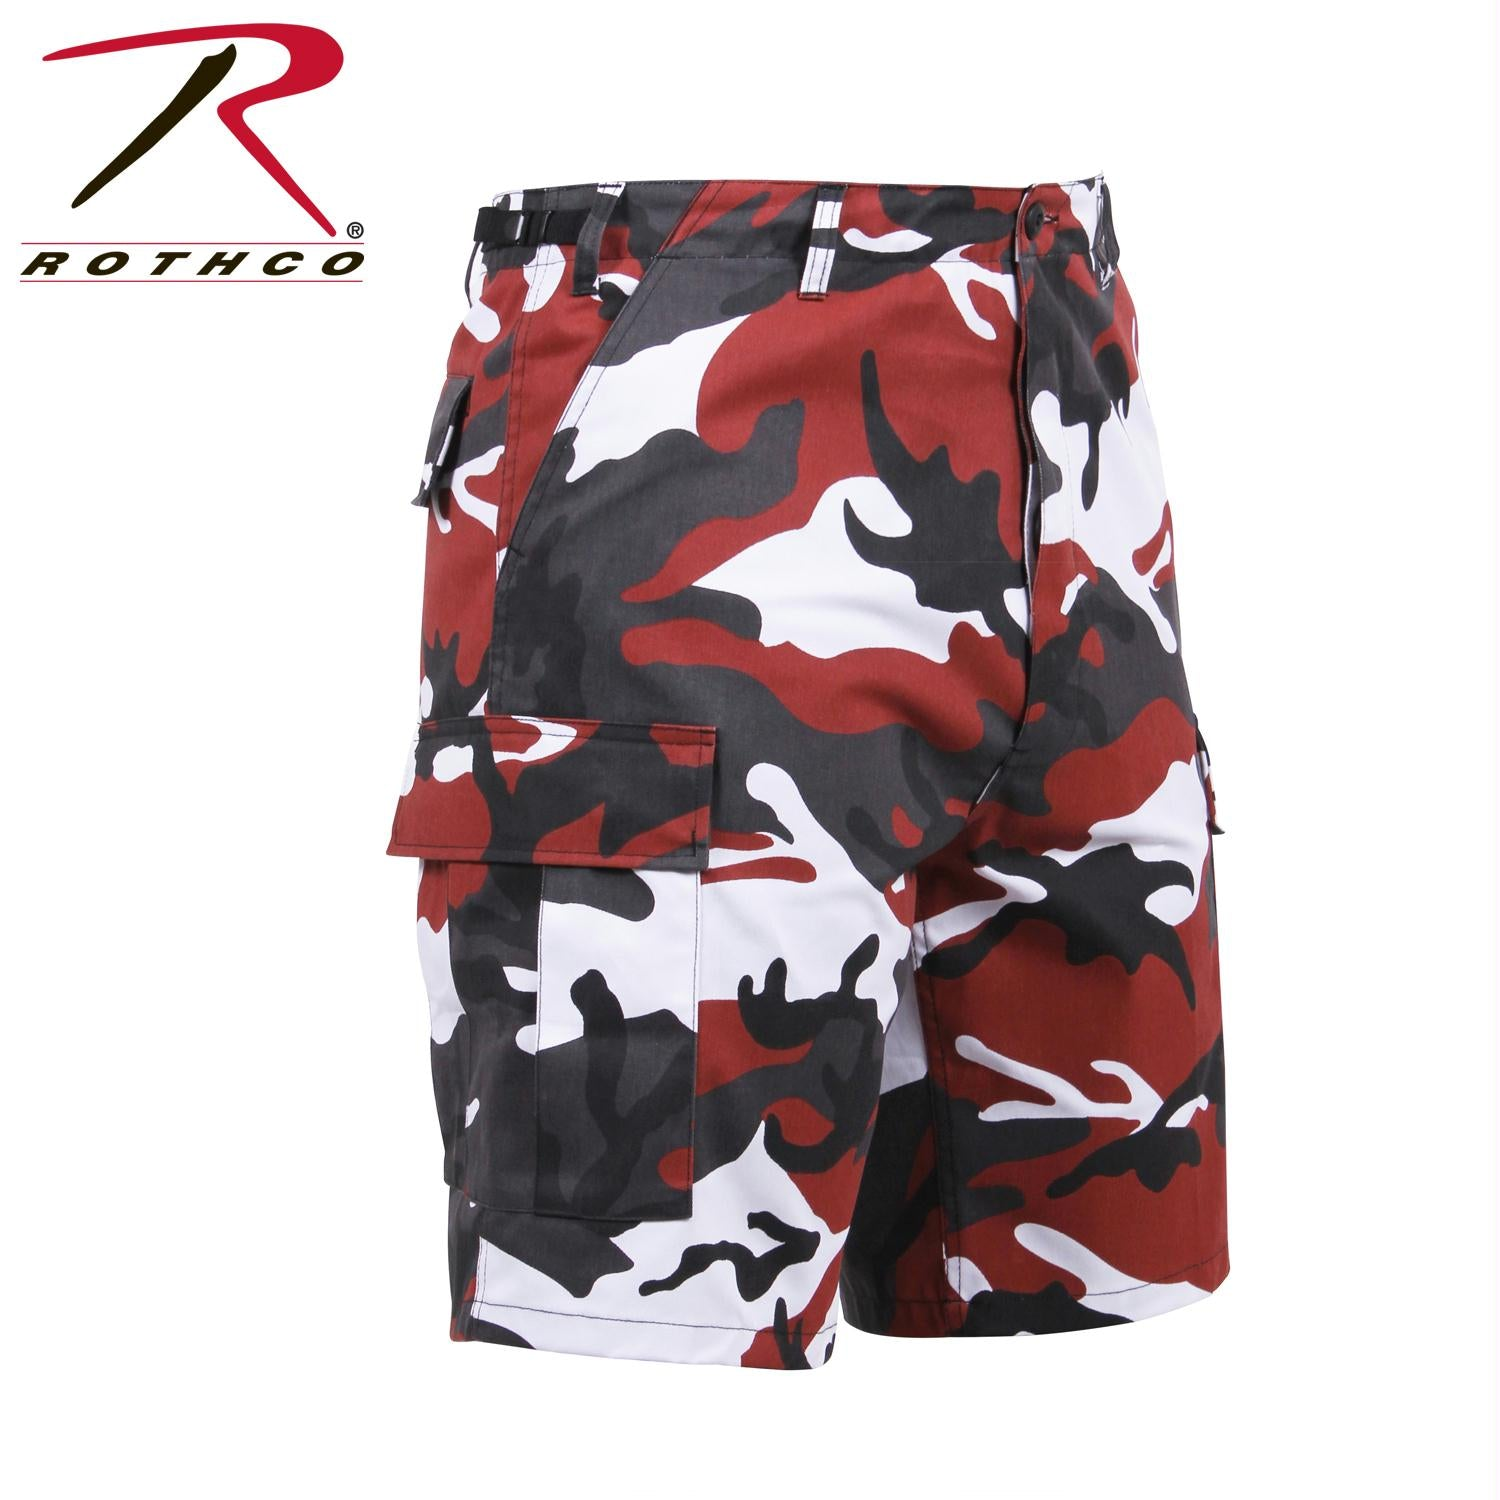 Rothco Colored Camo BDU Shorts - Red Camo / XS